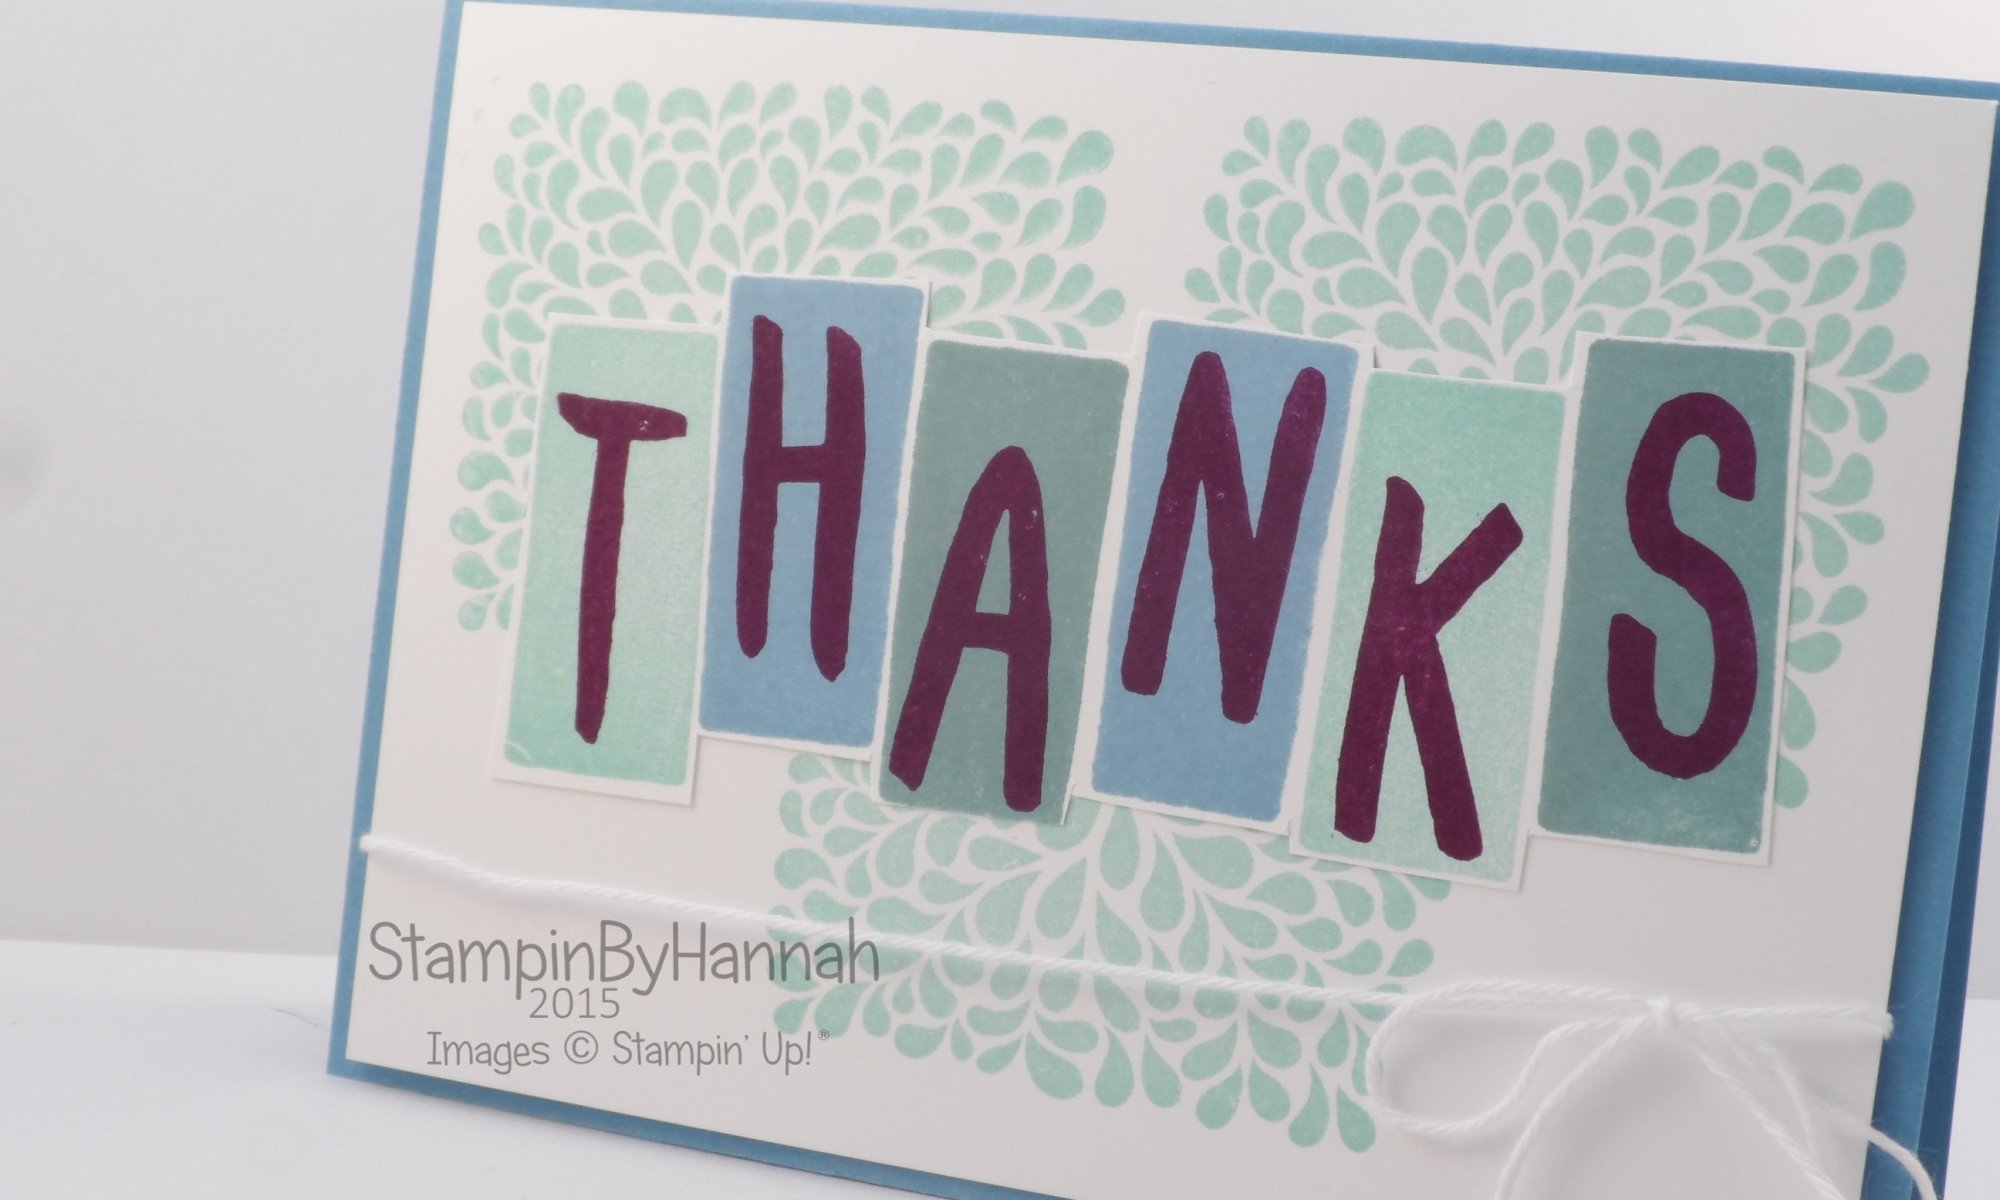 Stampin' Up! UK Technique videos